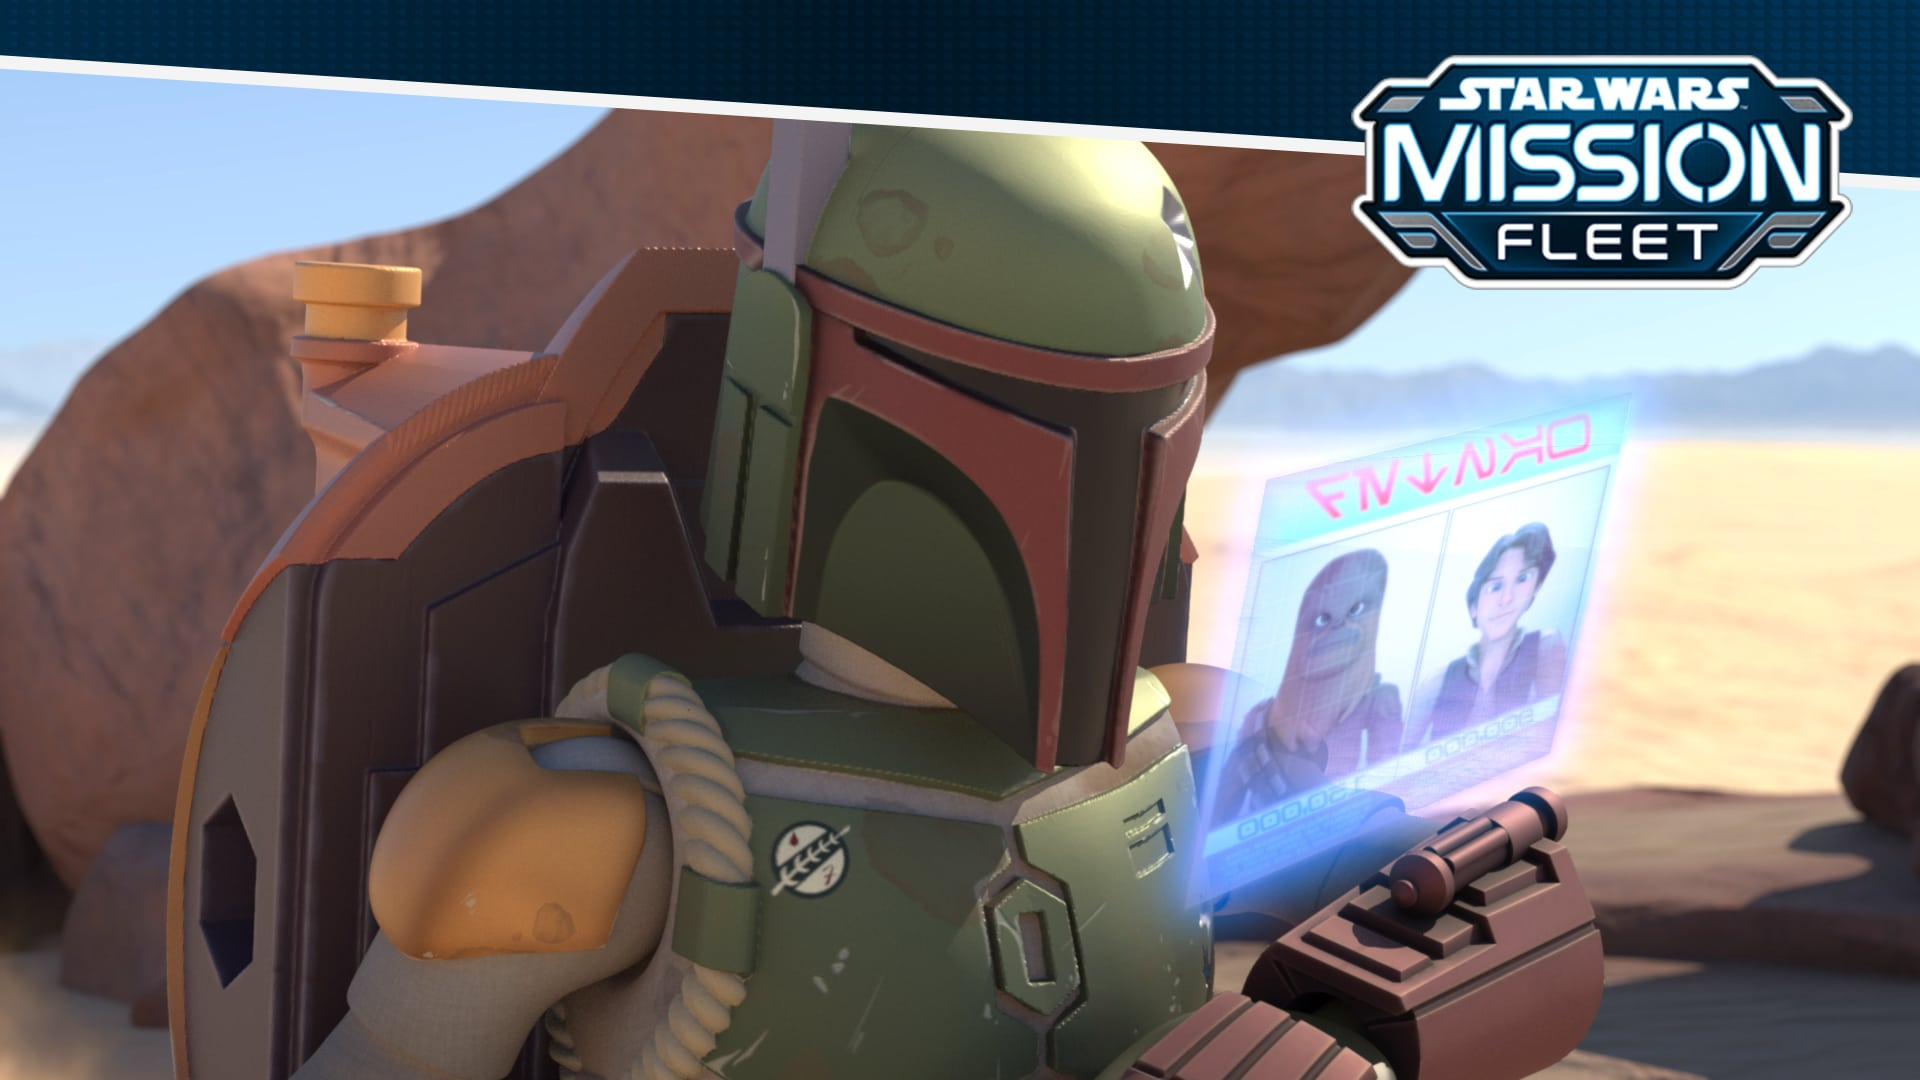 It's Not Wise to Let Your Guard Down | Hasbro Star Wars Mission Fleet Short